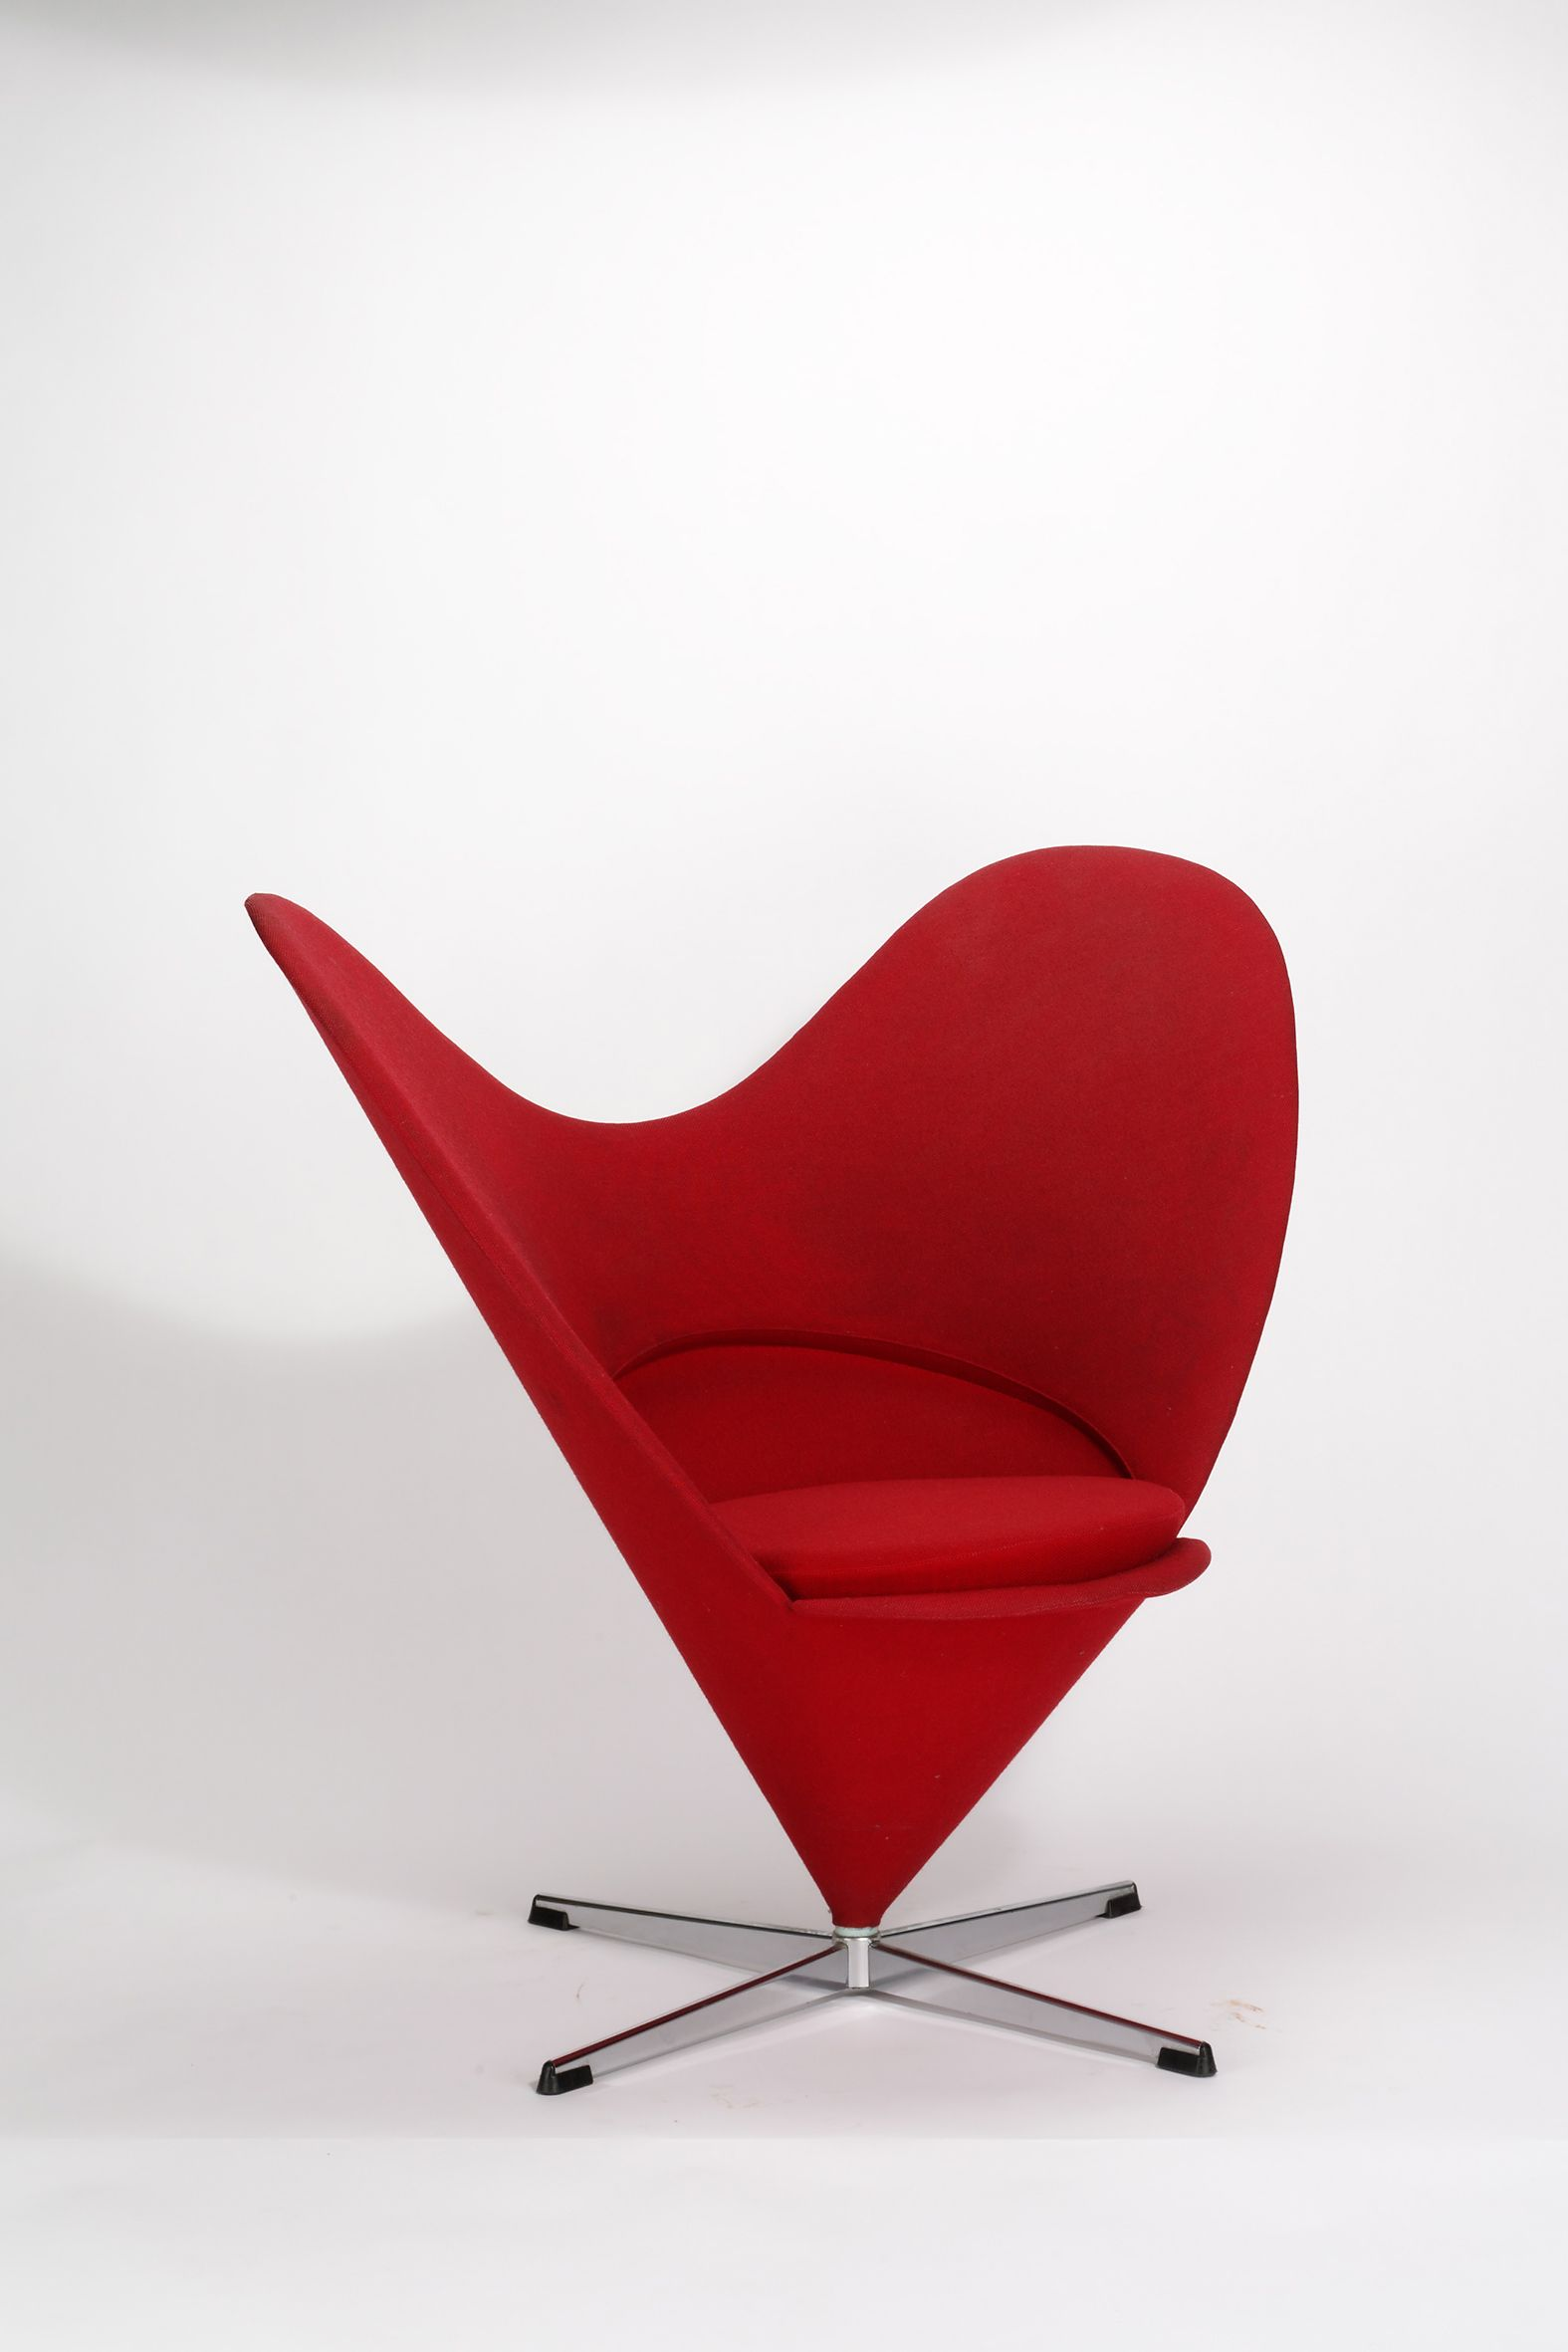 Verner Panton, Heart Cone Chair (1959)